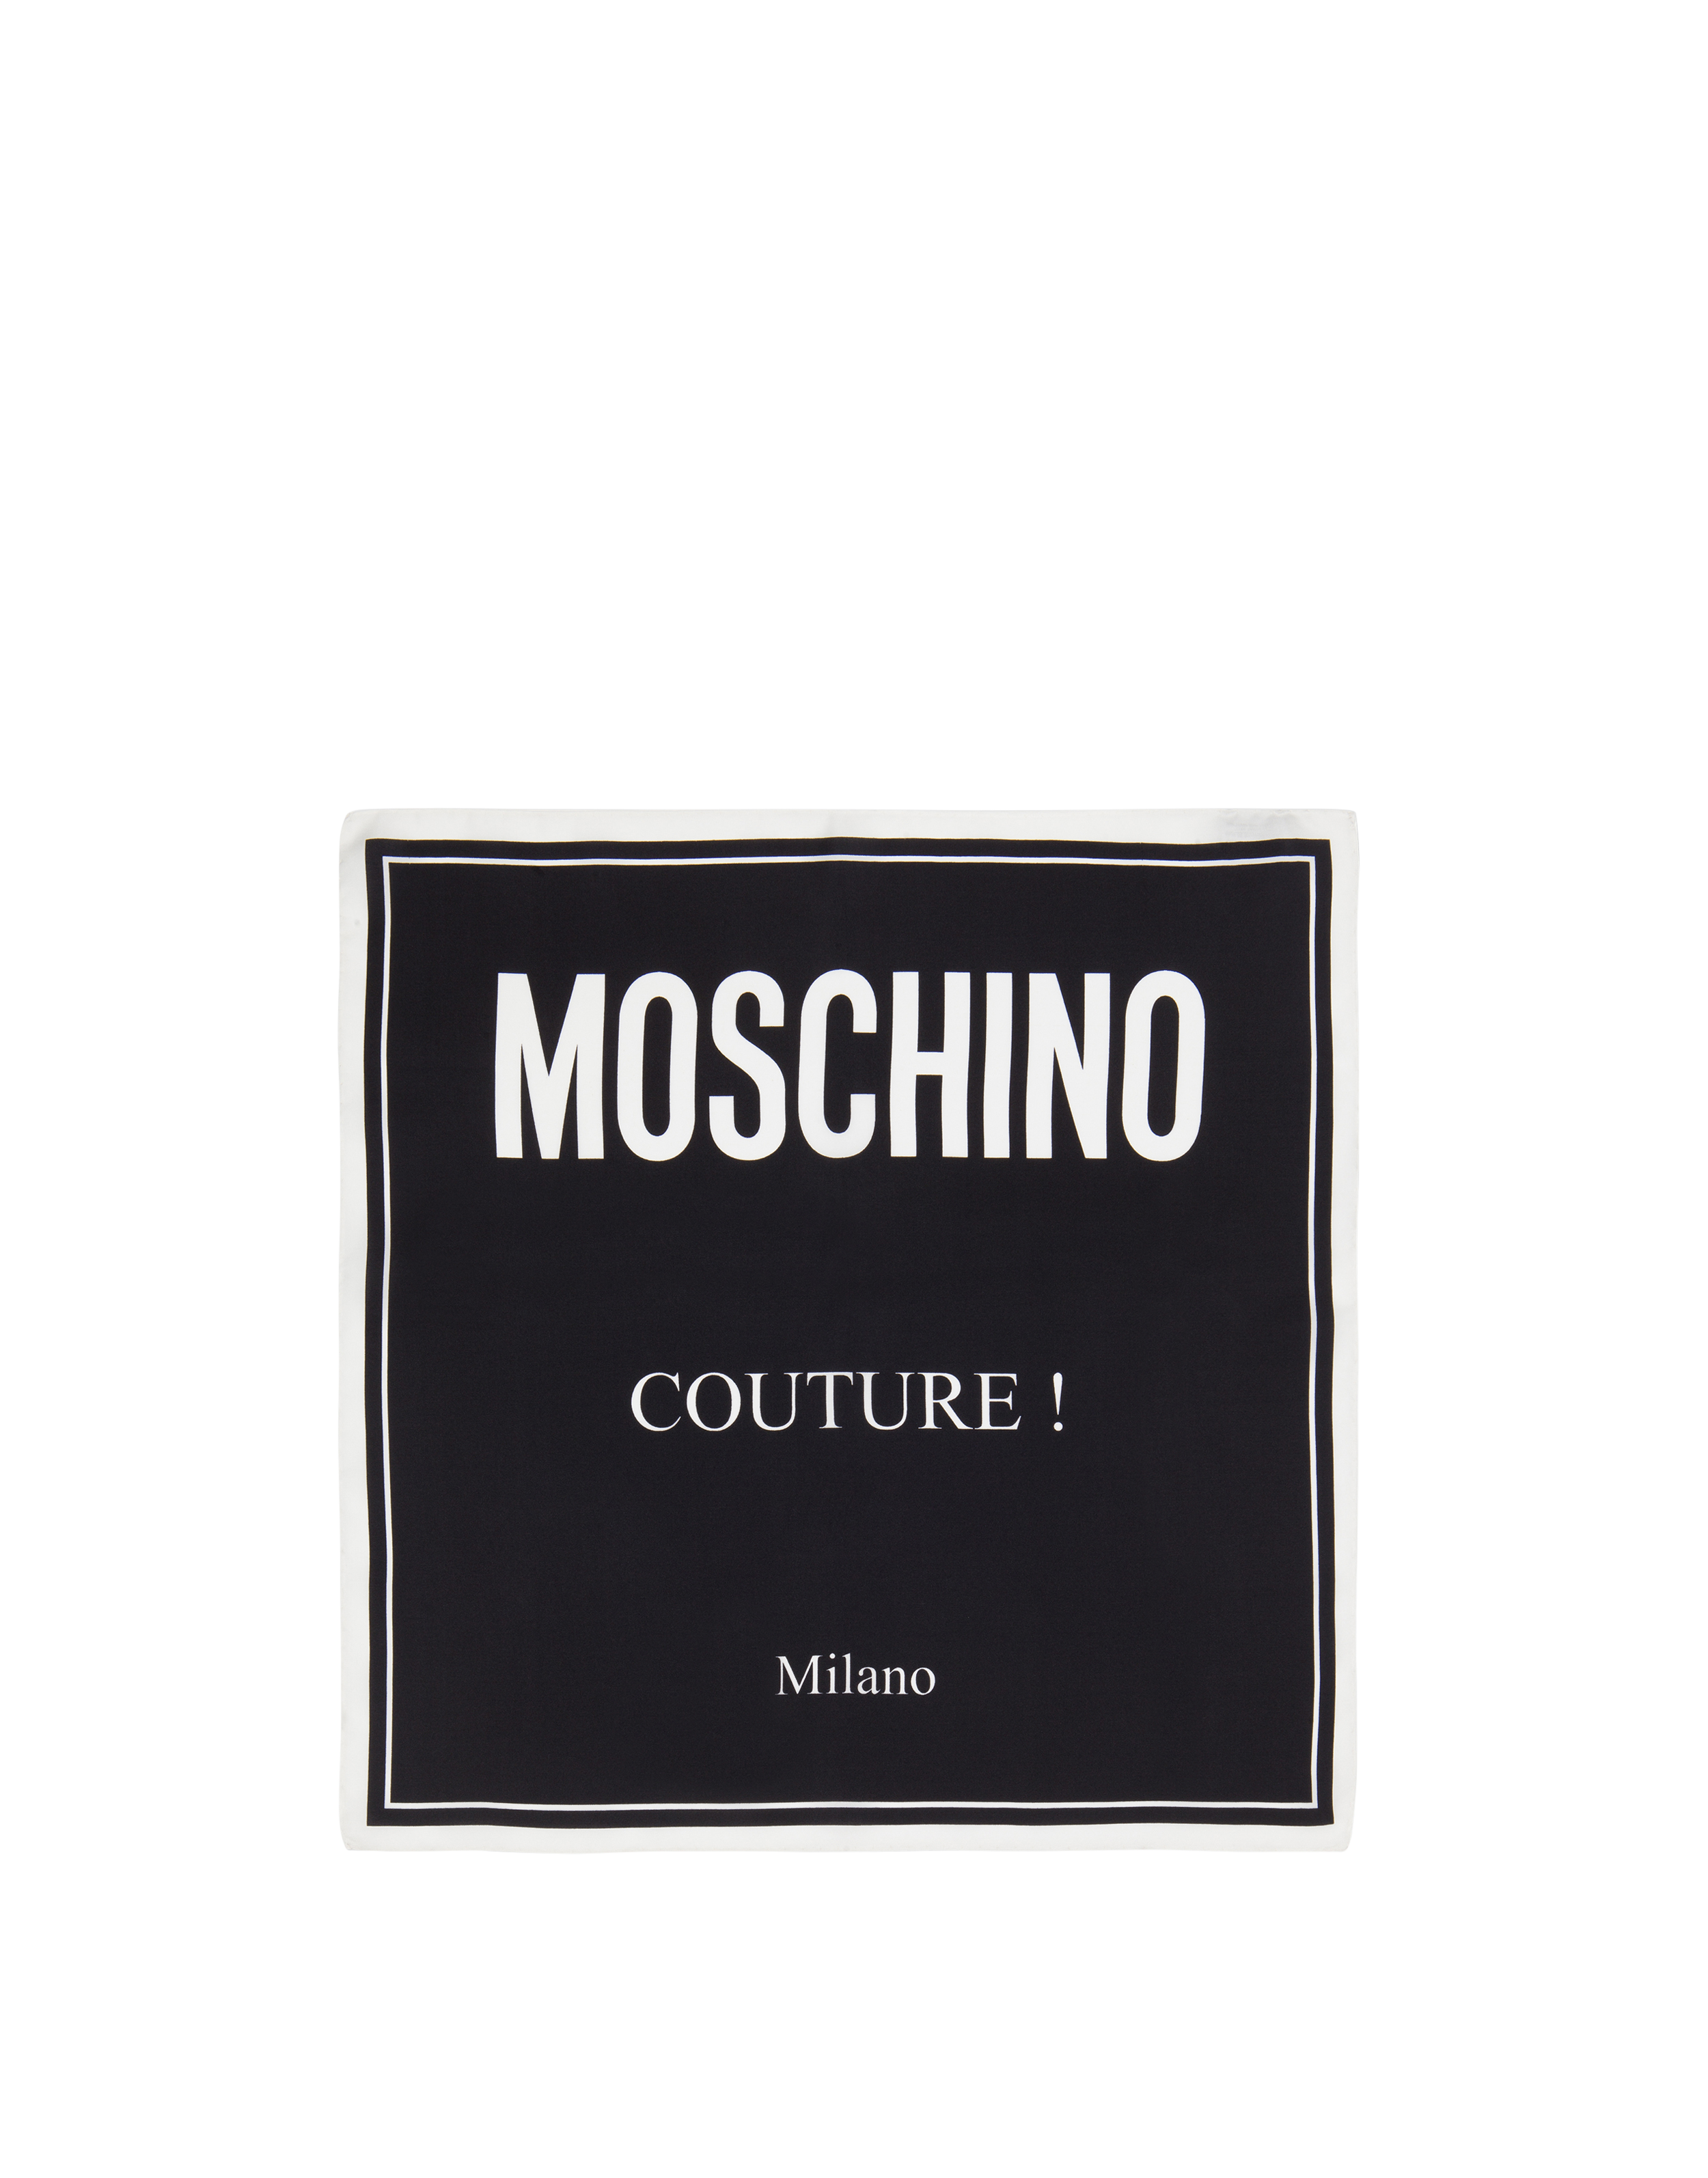 Silk headscarf with Moschino Couture print.